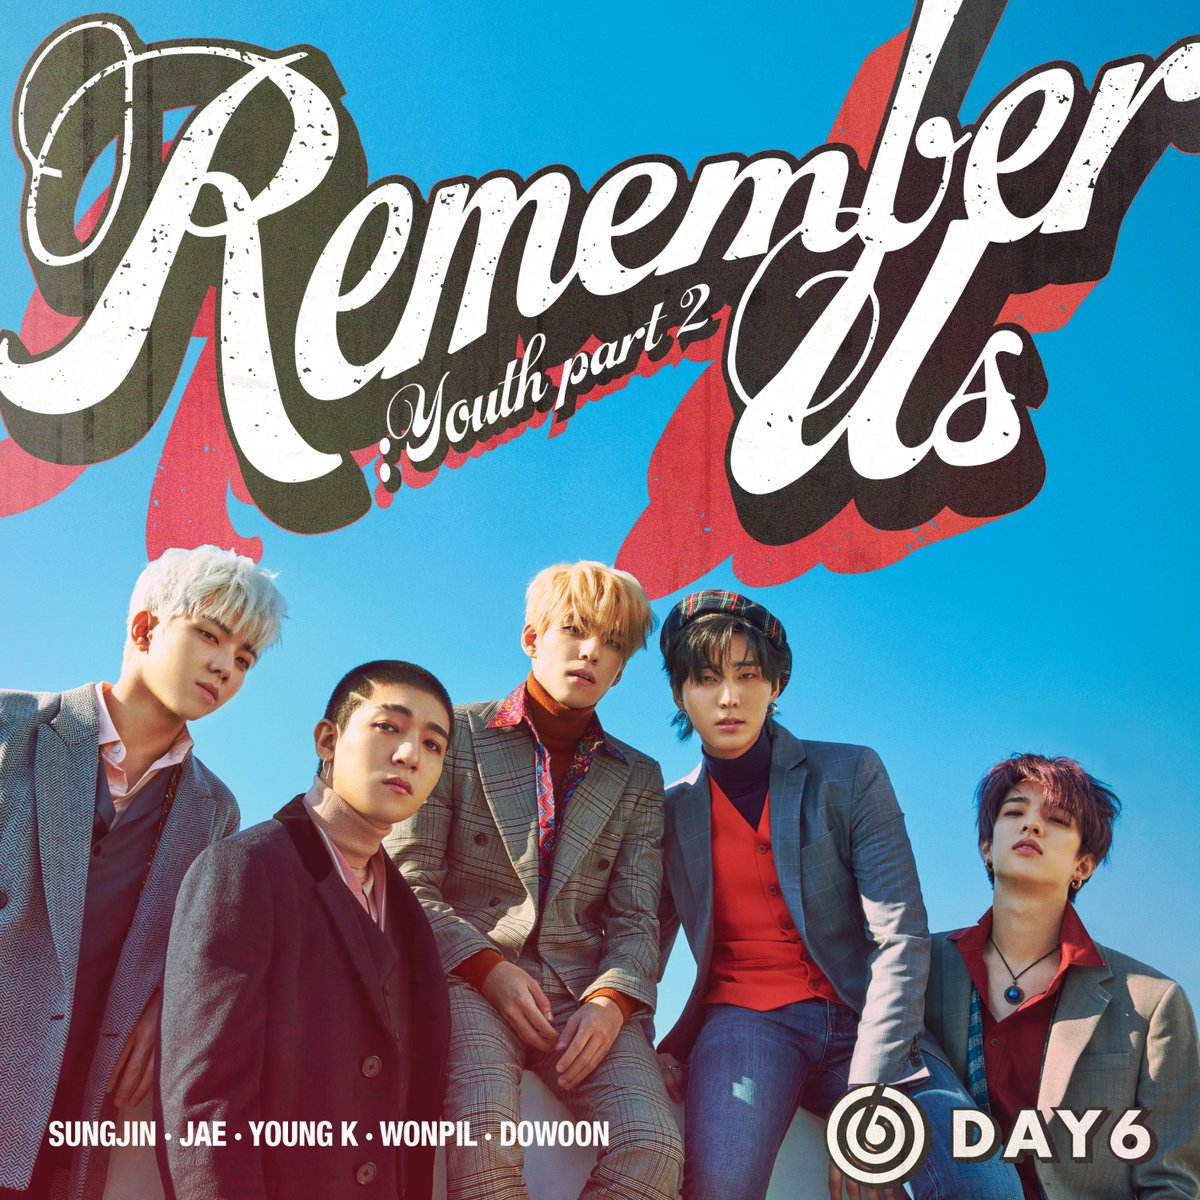 Update Day6 Gives Sneak Preview Of All Their Tracks On